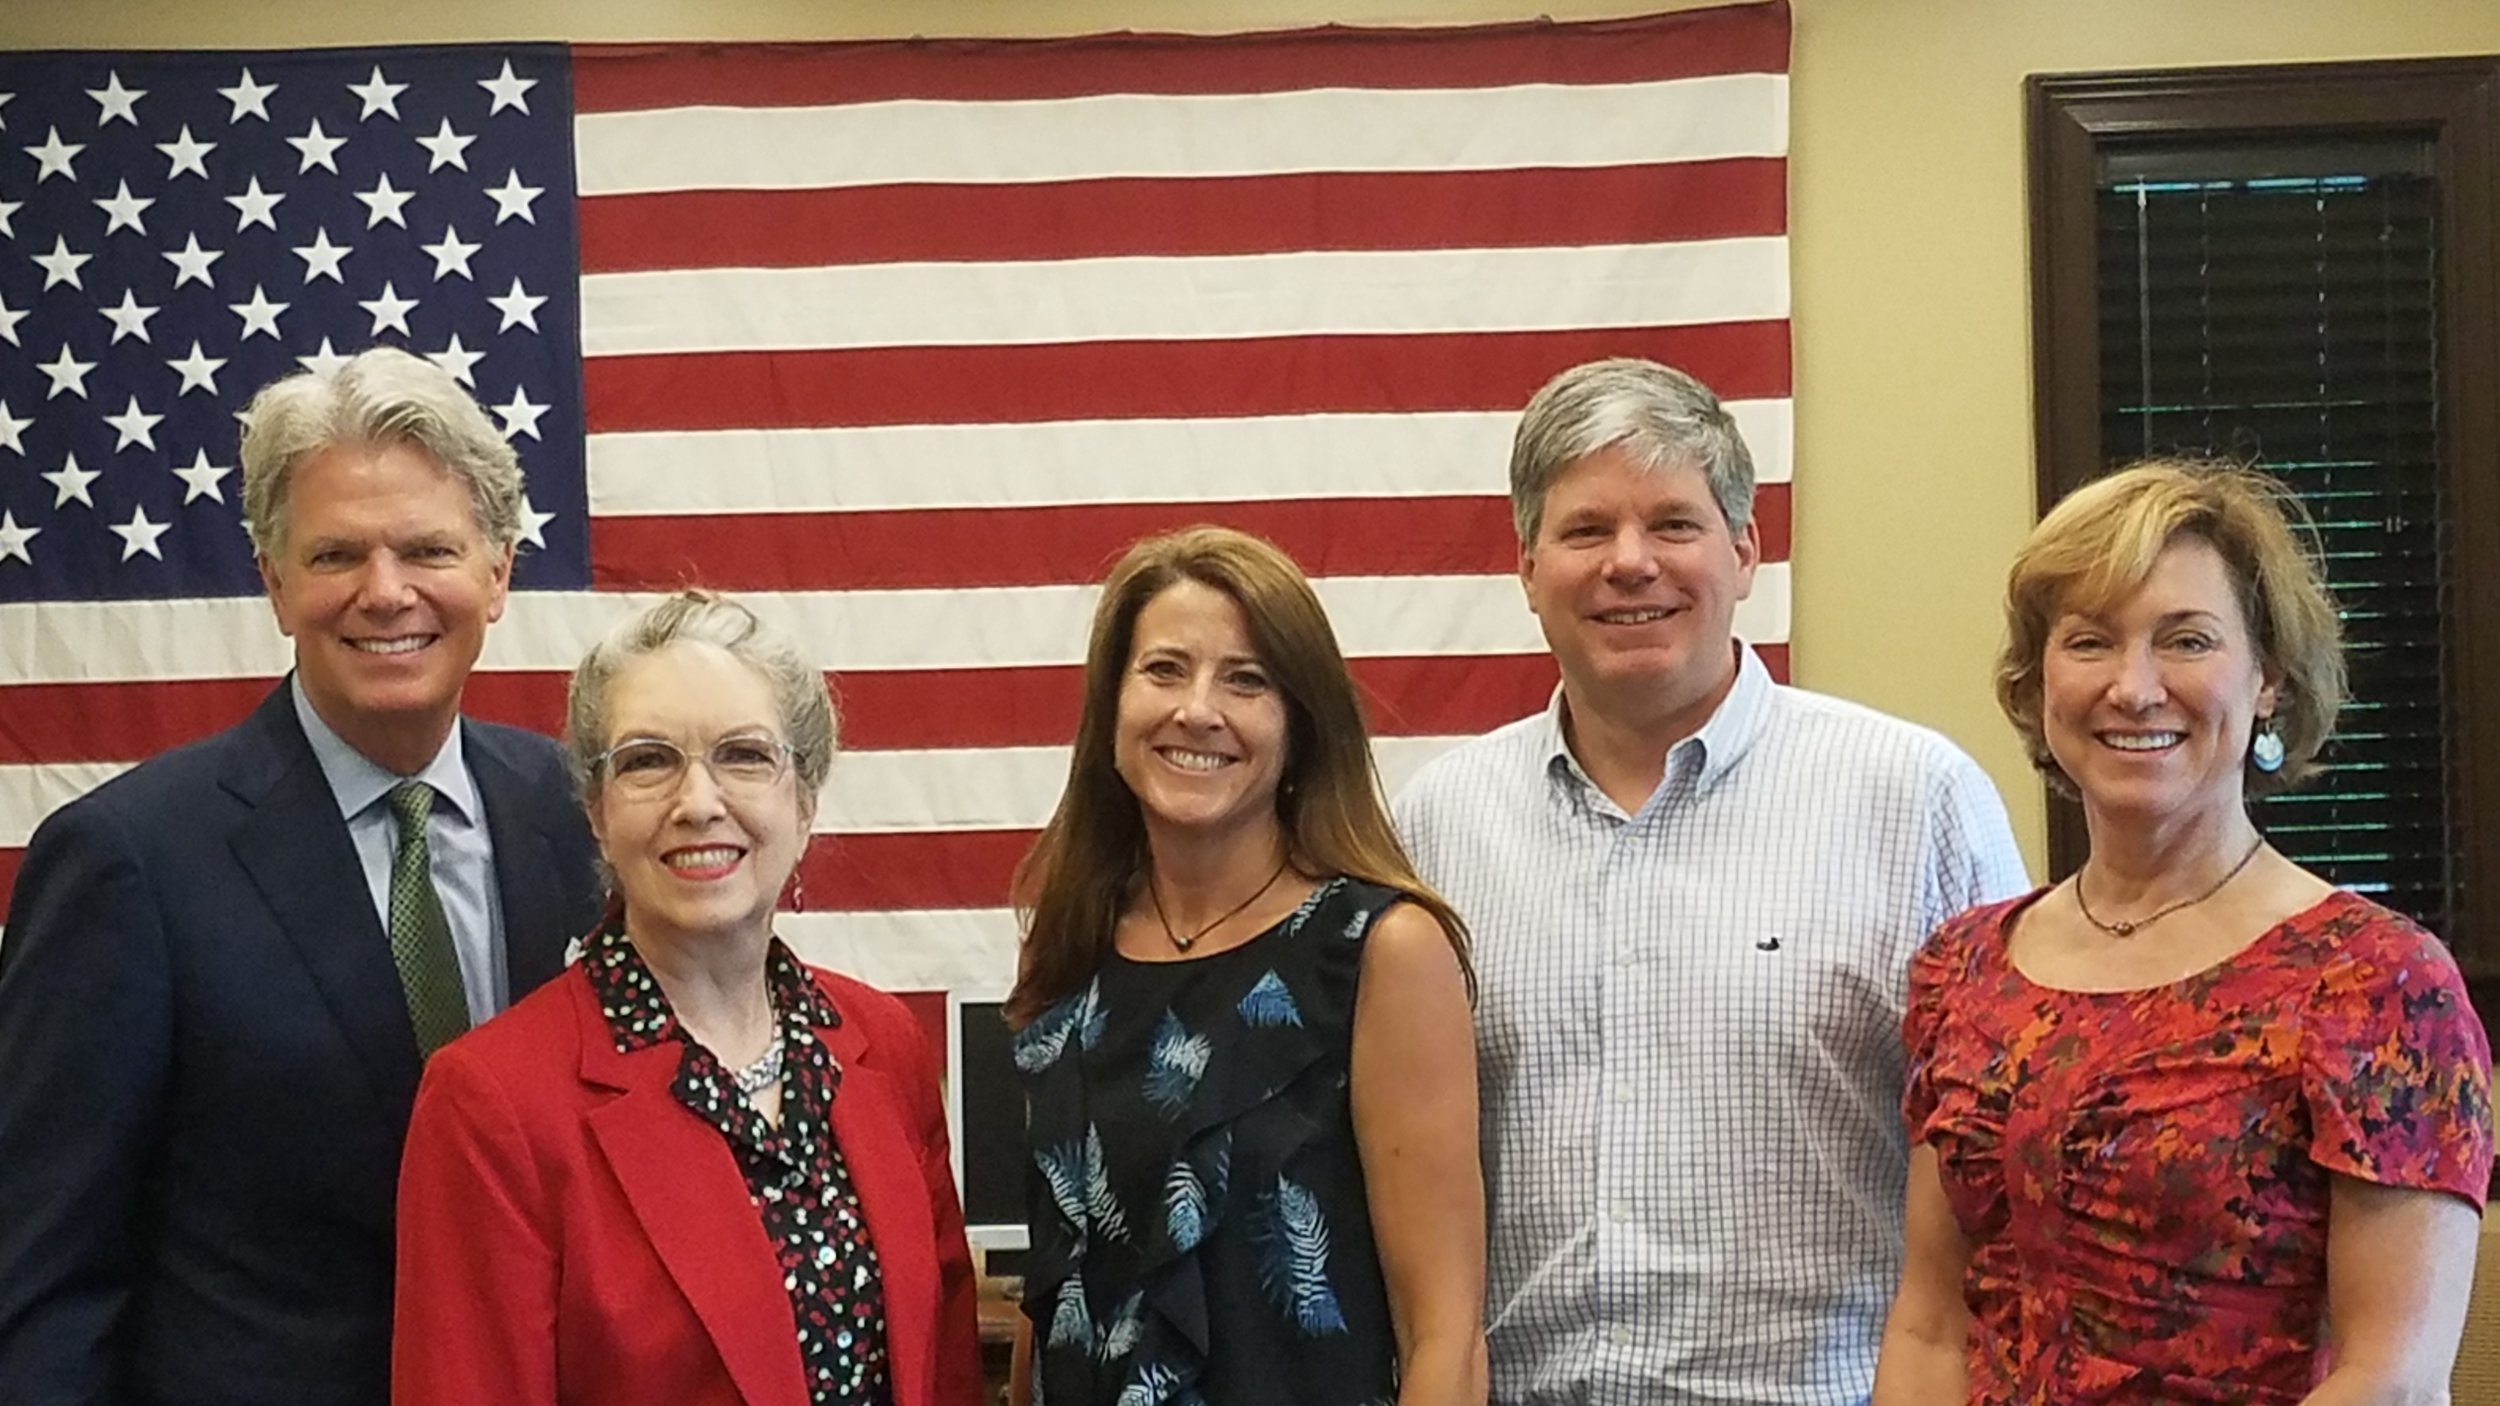 (Left to Right) Mountain Brook Mayor Stewart Welch, III, Birmingham City Councilor Valerie A. Abbott, Homewood City Councilor Jennifer Andress, State Representative David Faulkner and Mountain Brook City Councilor Virginia Caruthers Smith.